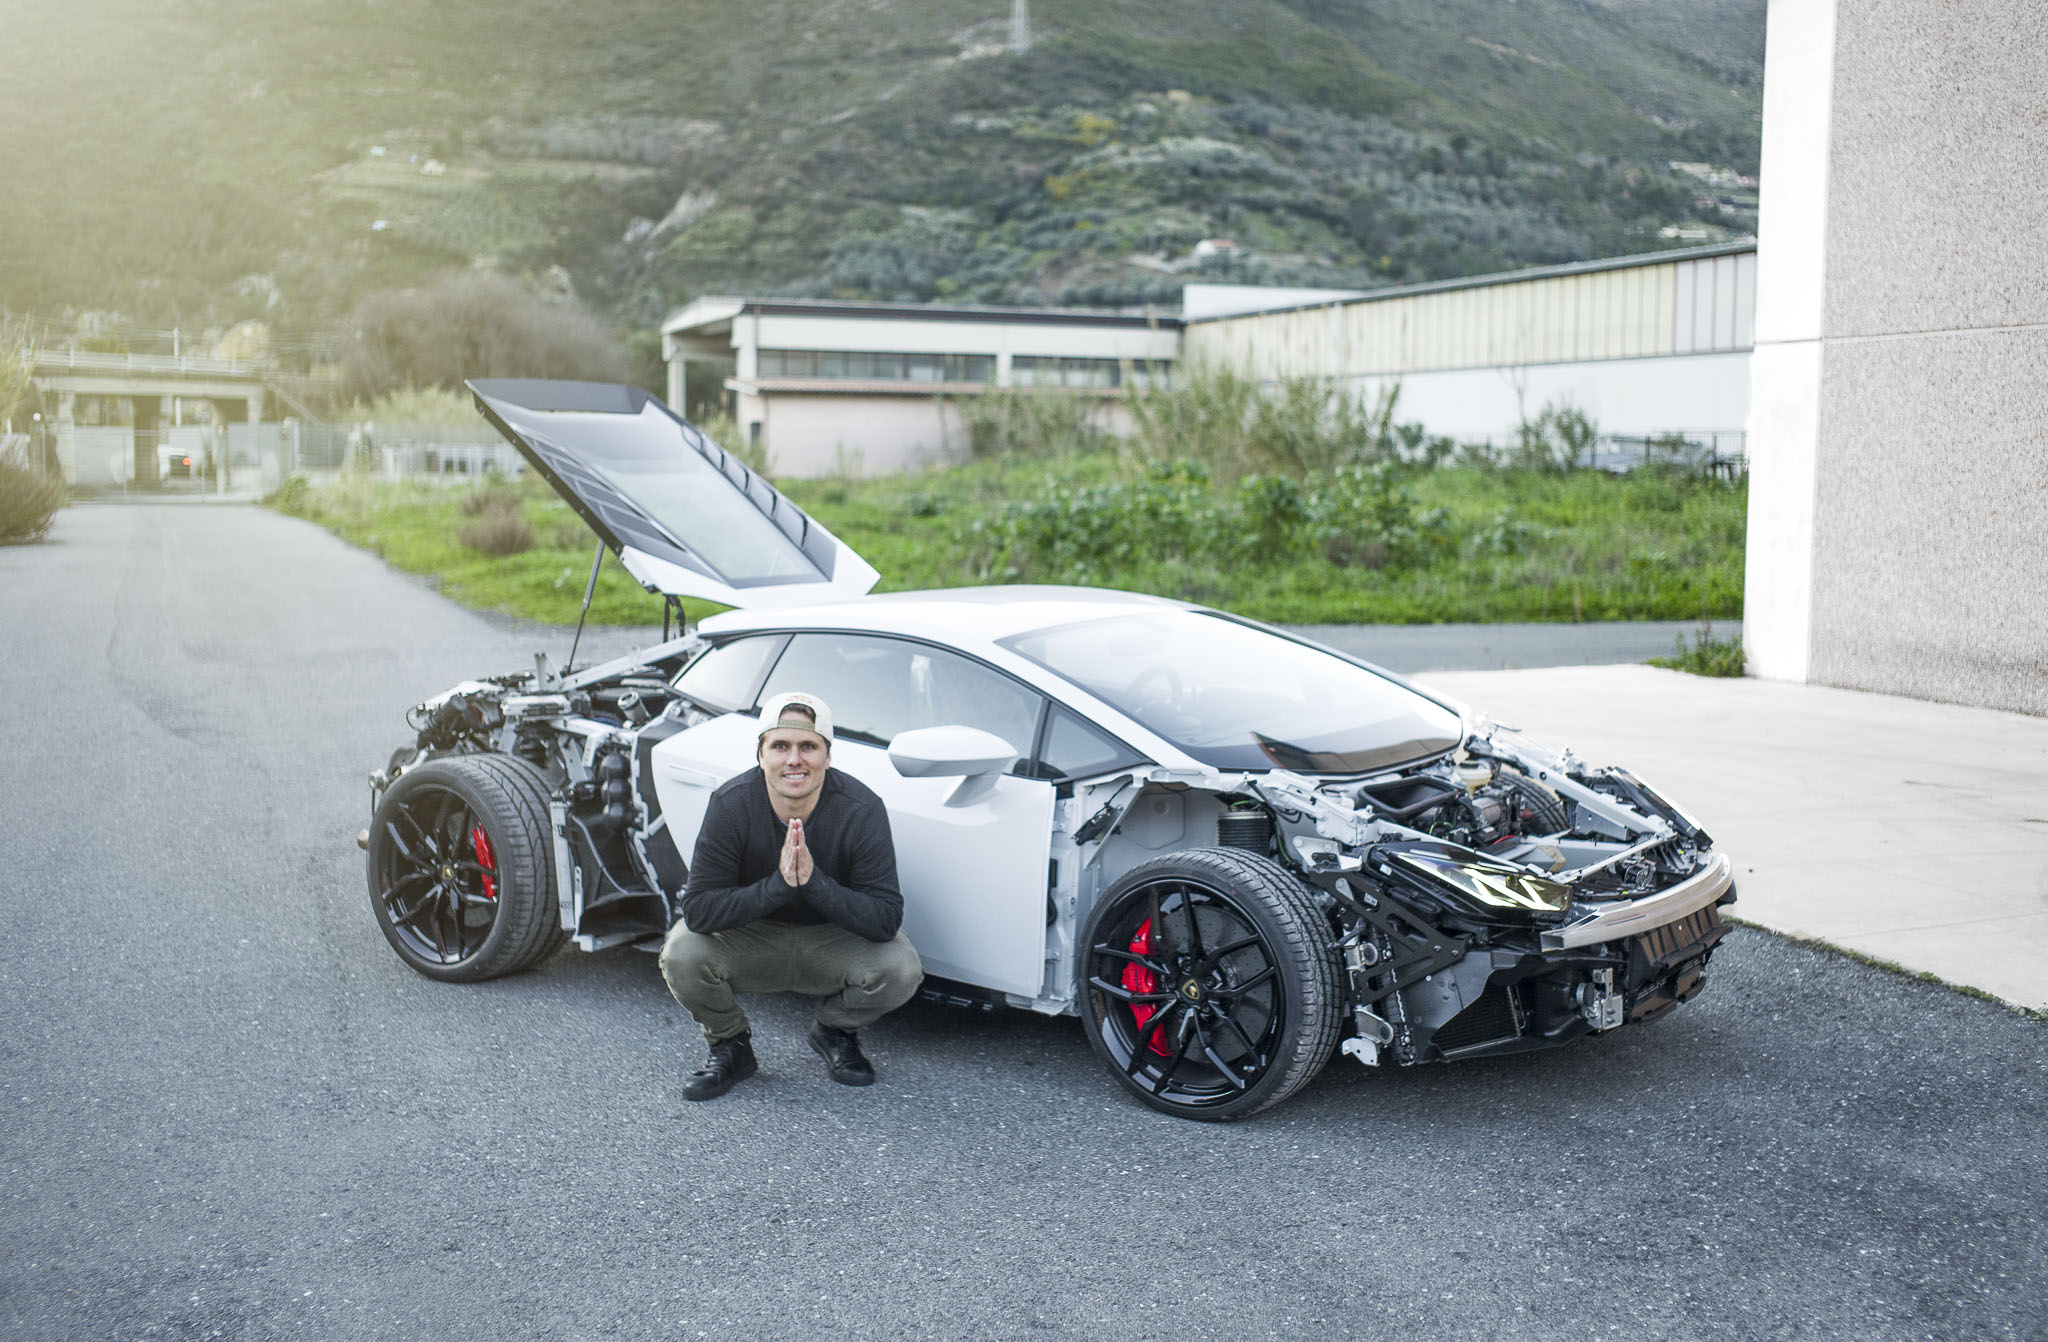 jon olsson 39 s lamborghini huracan loses body panels prepares for carbon bodykit autoevolution. Black Bedroom Furniture Sets. Home Design Ideas